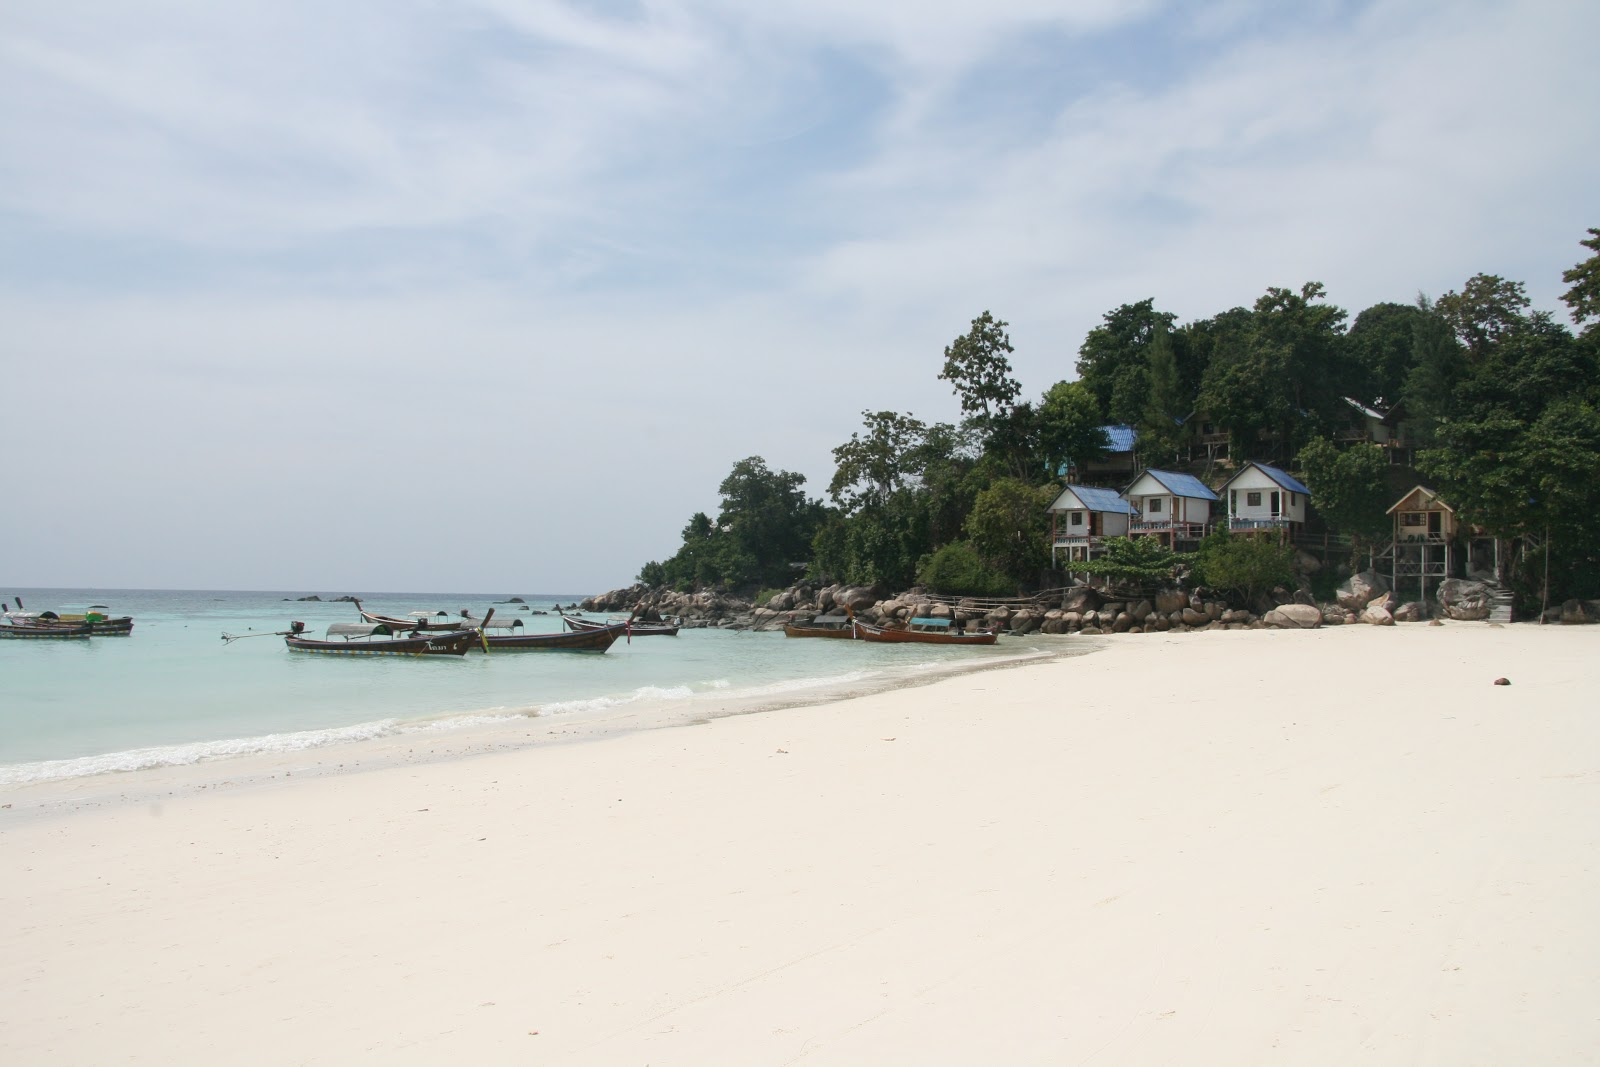 Thailand Expat Forum Forum For Expats Living In Thailand